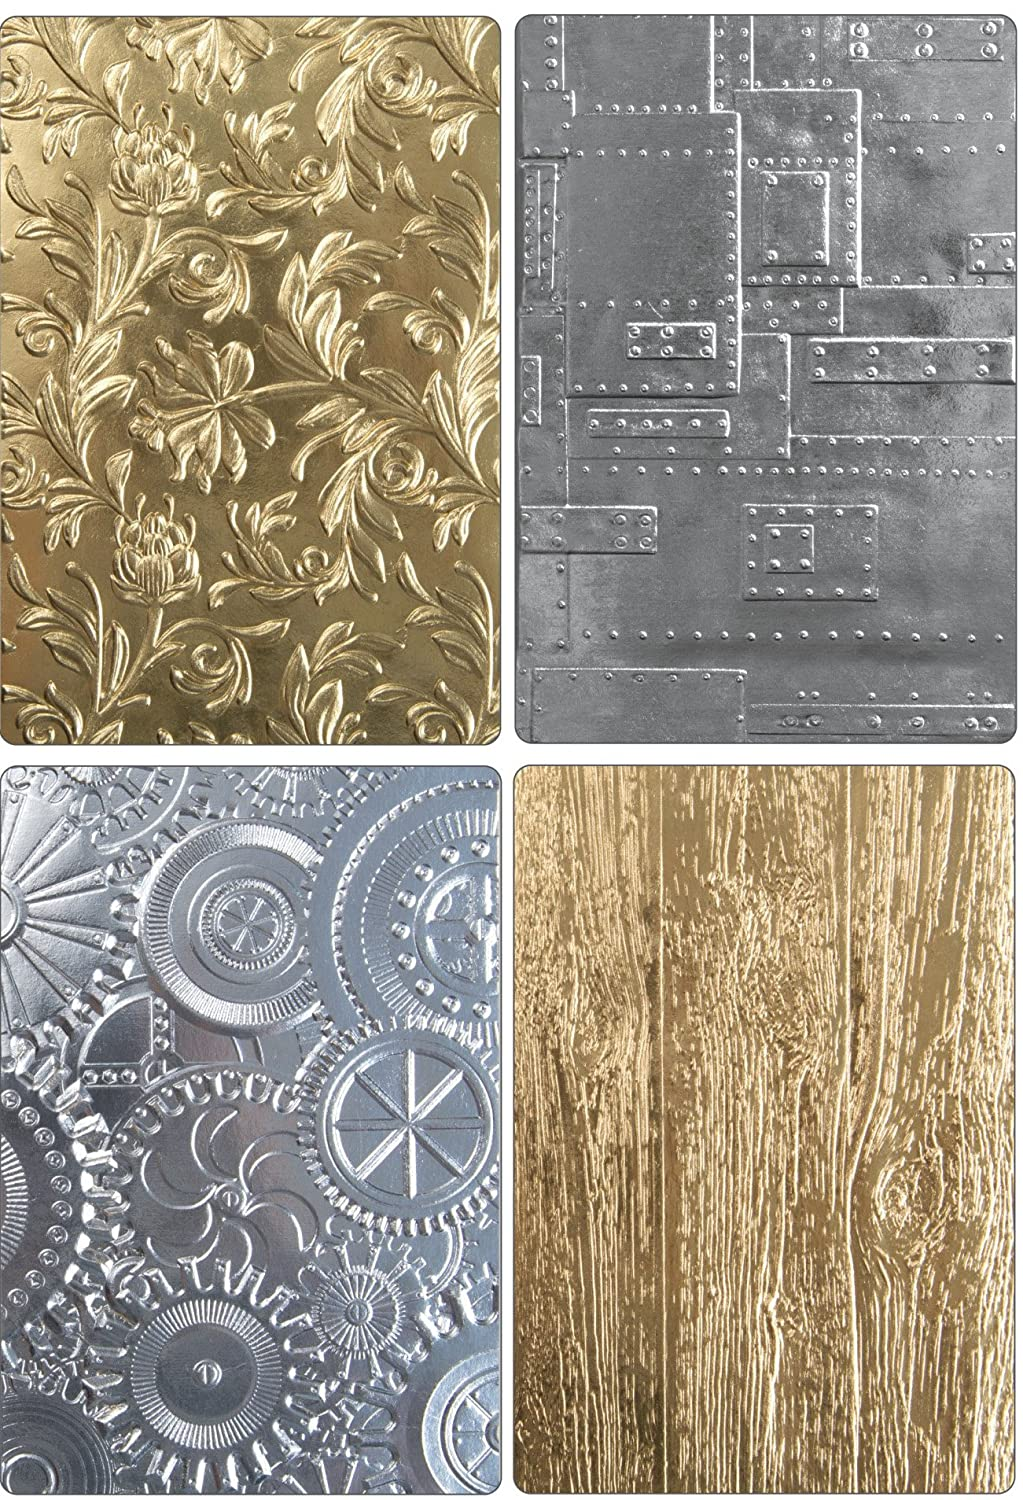 Tim Holtz Sizzix 3D Texture Fades Embossing Folders - Botanical, Lumber, Mechanics and Foundry - 4 item bundle Tim Holtz Texture Fades